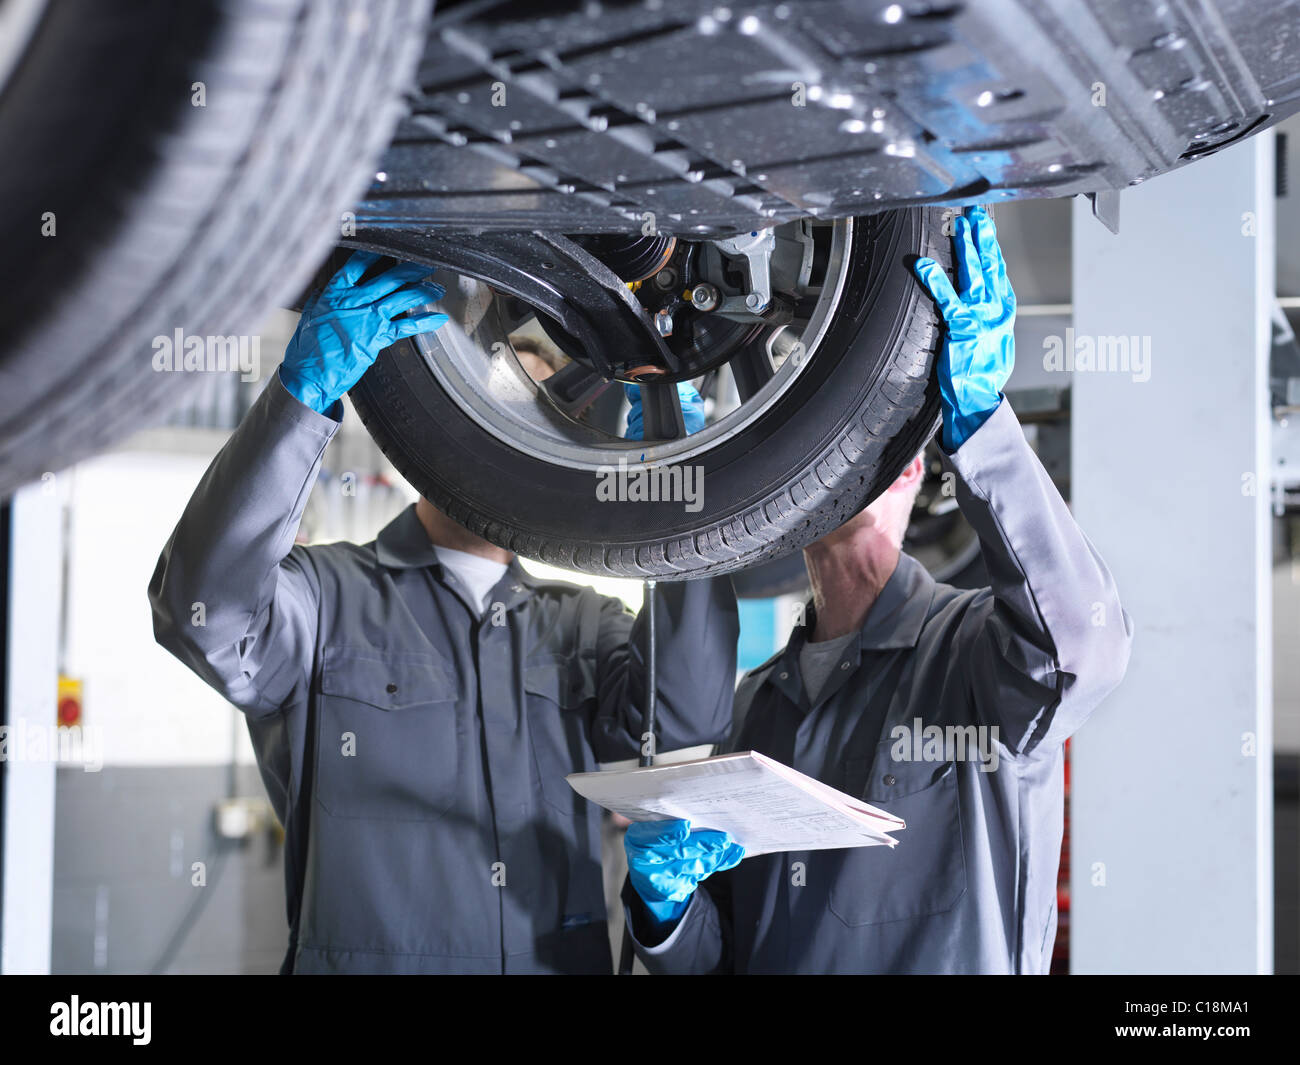 Mechanics working under car - Stock Image